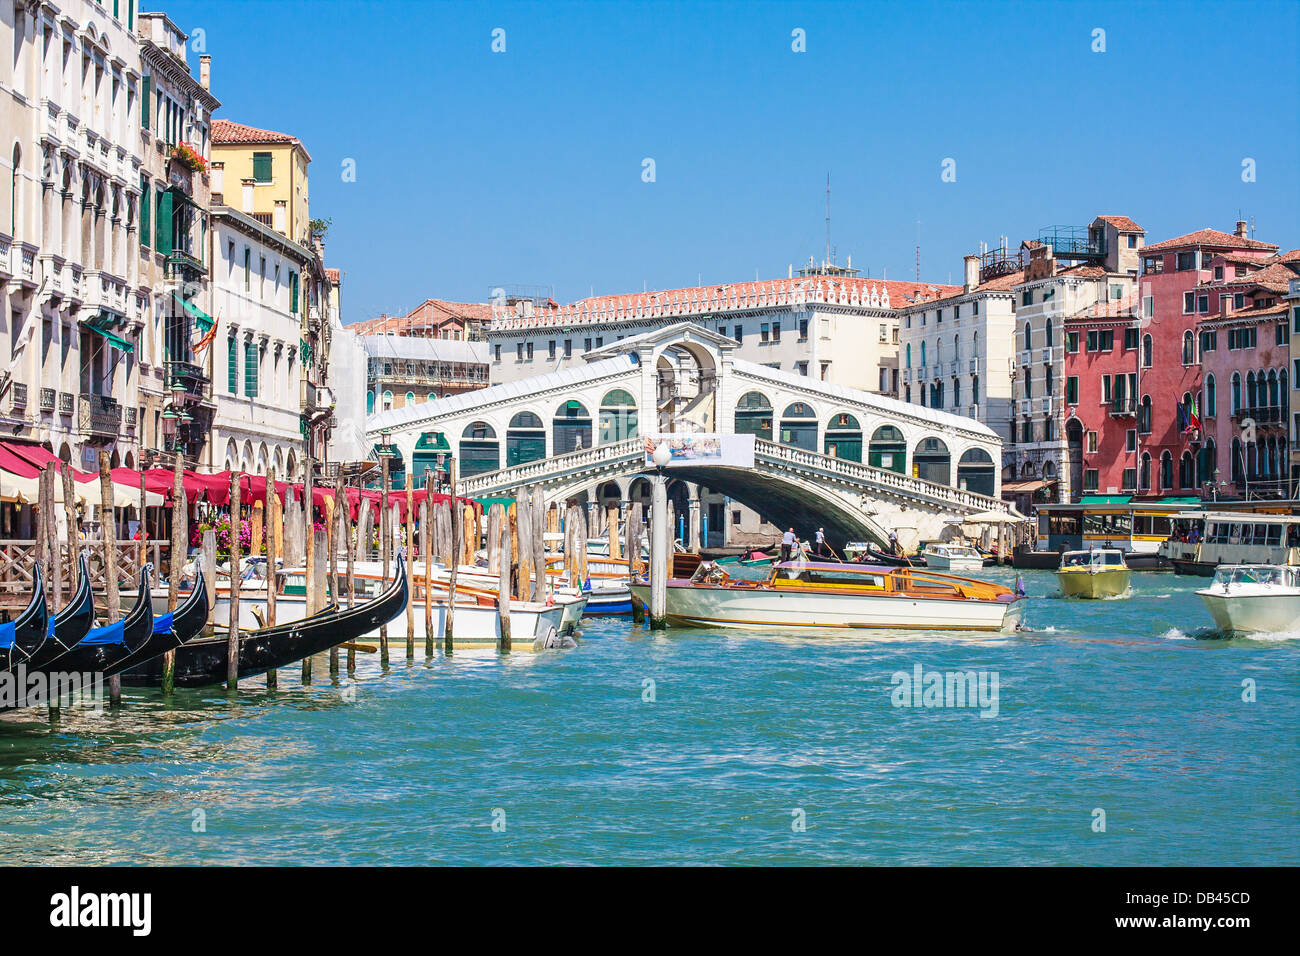 Venice - Rialto Bridge and Canale Grande, Italy - Stock Image